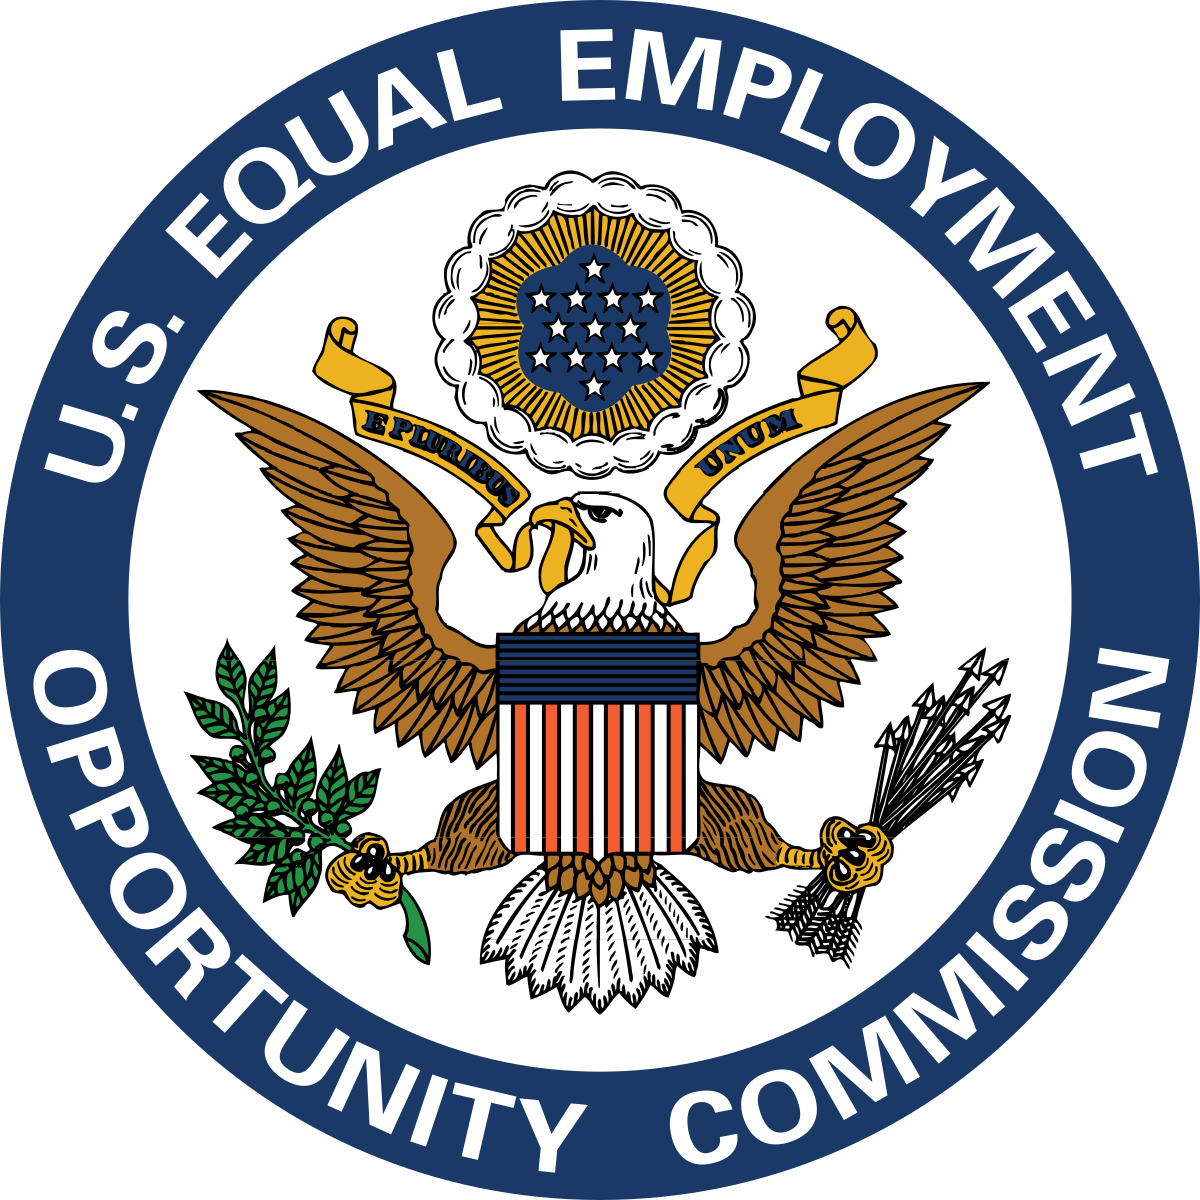 Are employment personality tests legal?